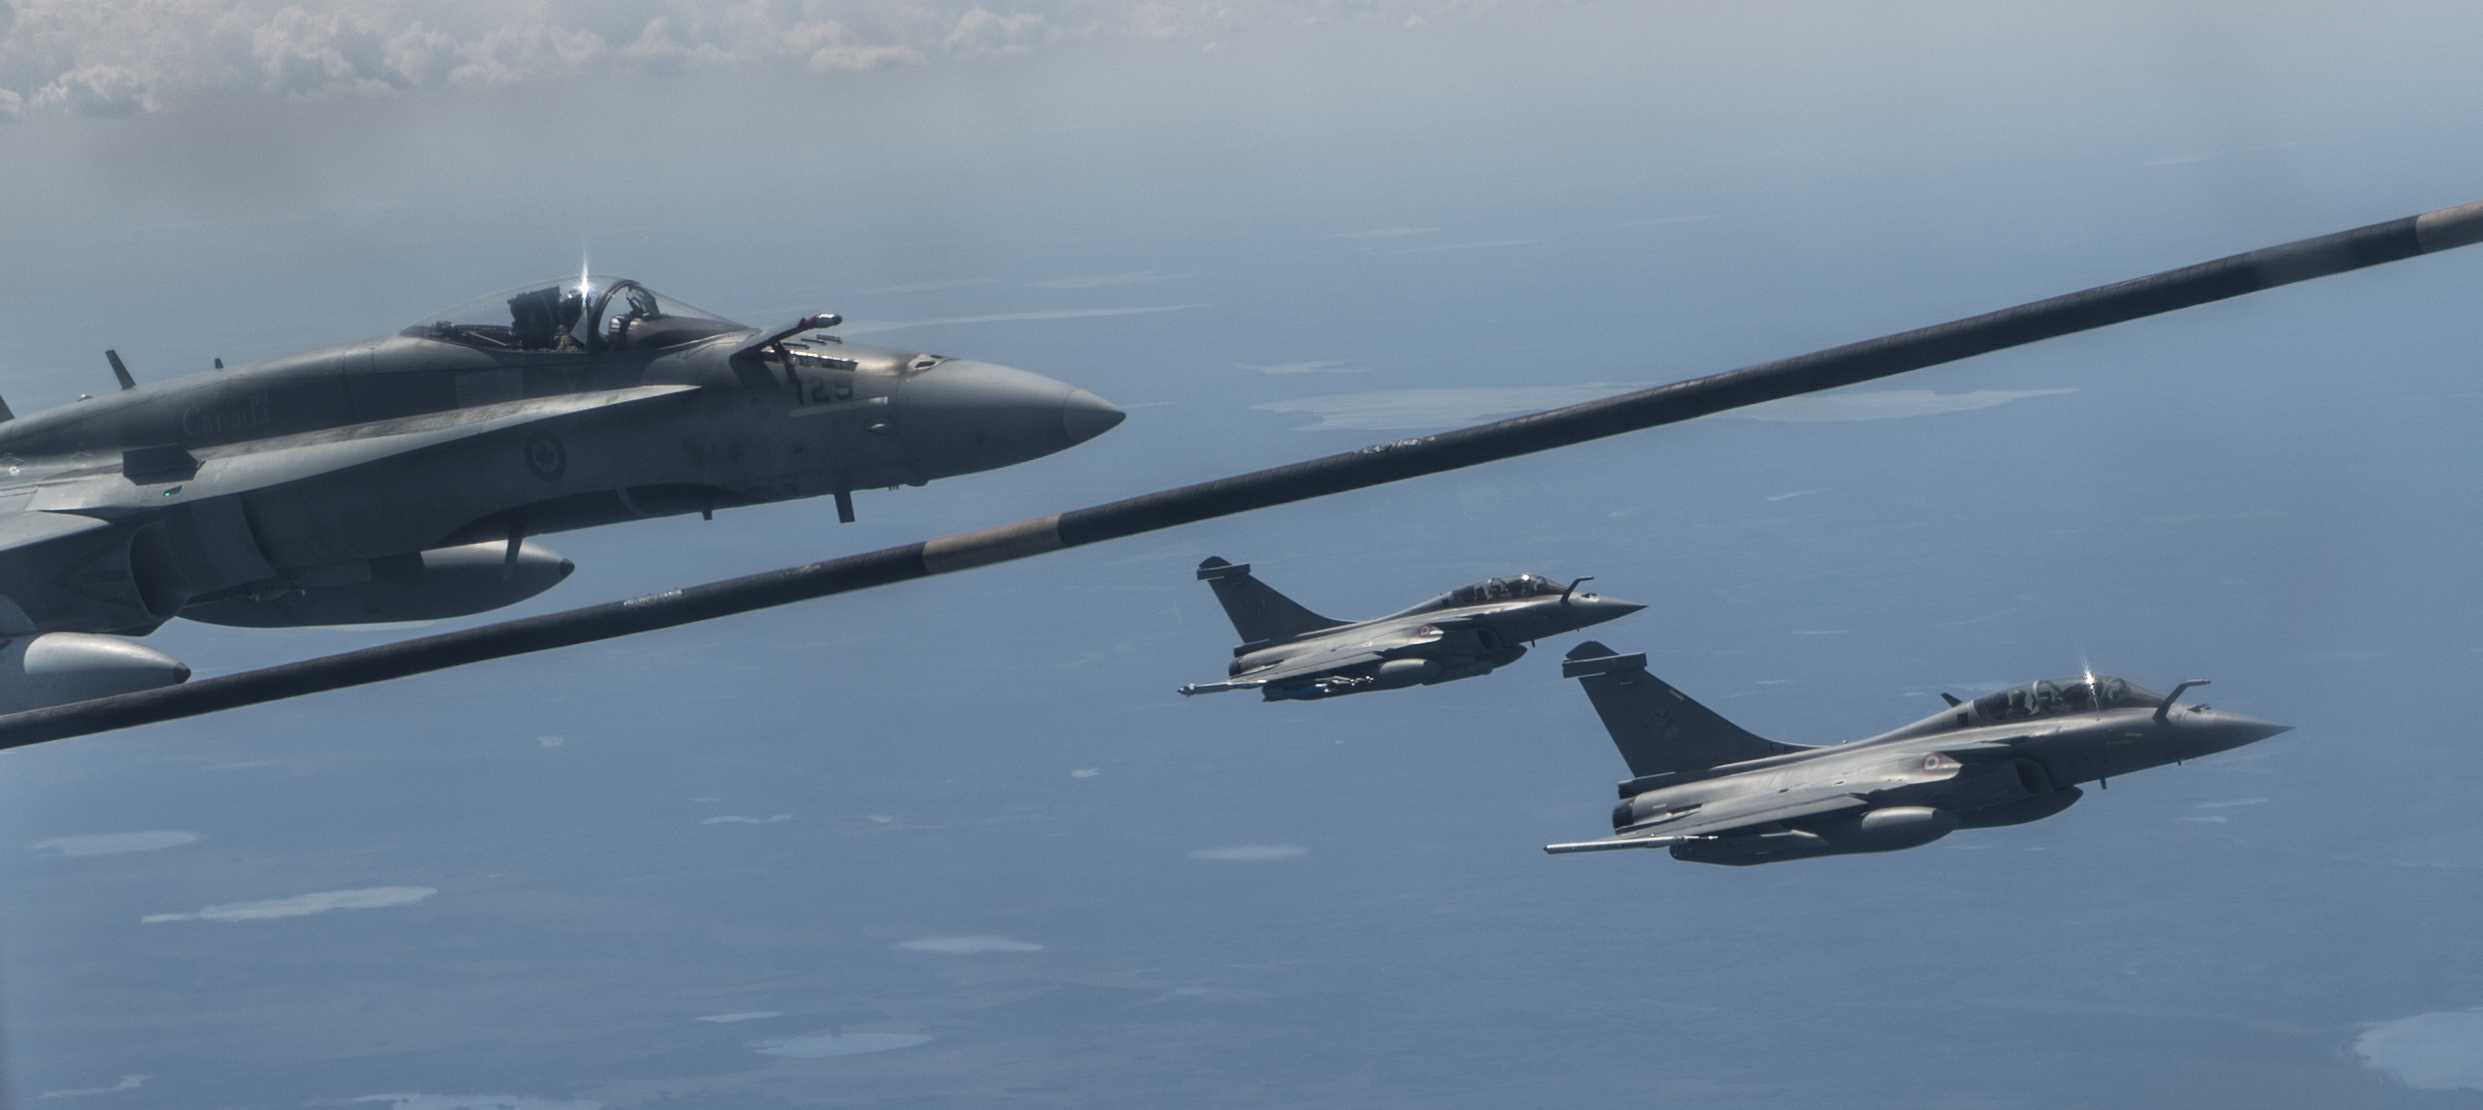 During Exercise Maple Flag, a CF-188 Hornet fighter aircraft (left) moves into position to refuel from a CC-130 Hercules aircraft over 4 Wing Cold Lake, Alberta, on June 21, 2016, while two French Air Force Rafale fighter aircraft fly alongside. PHOTO: Corporal Manuela Berger, CK01-2016-0510-214